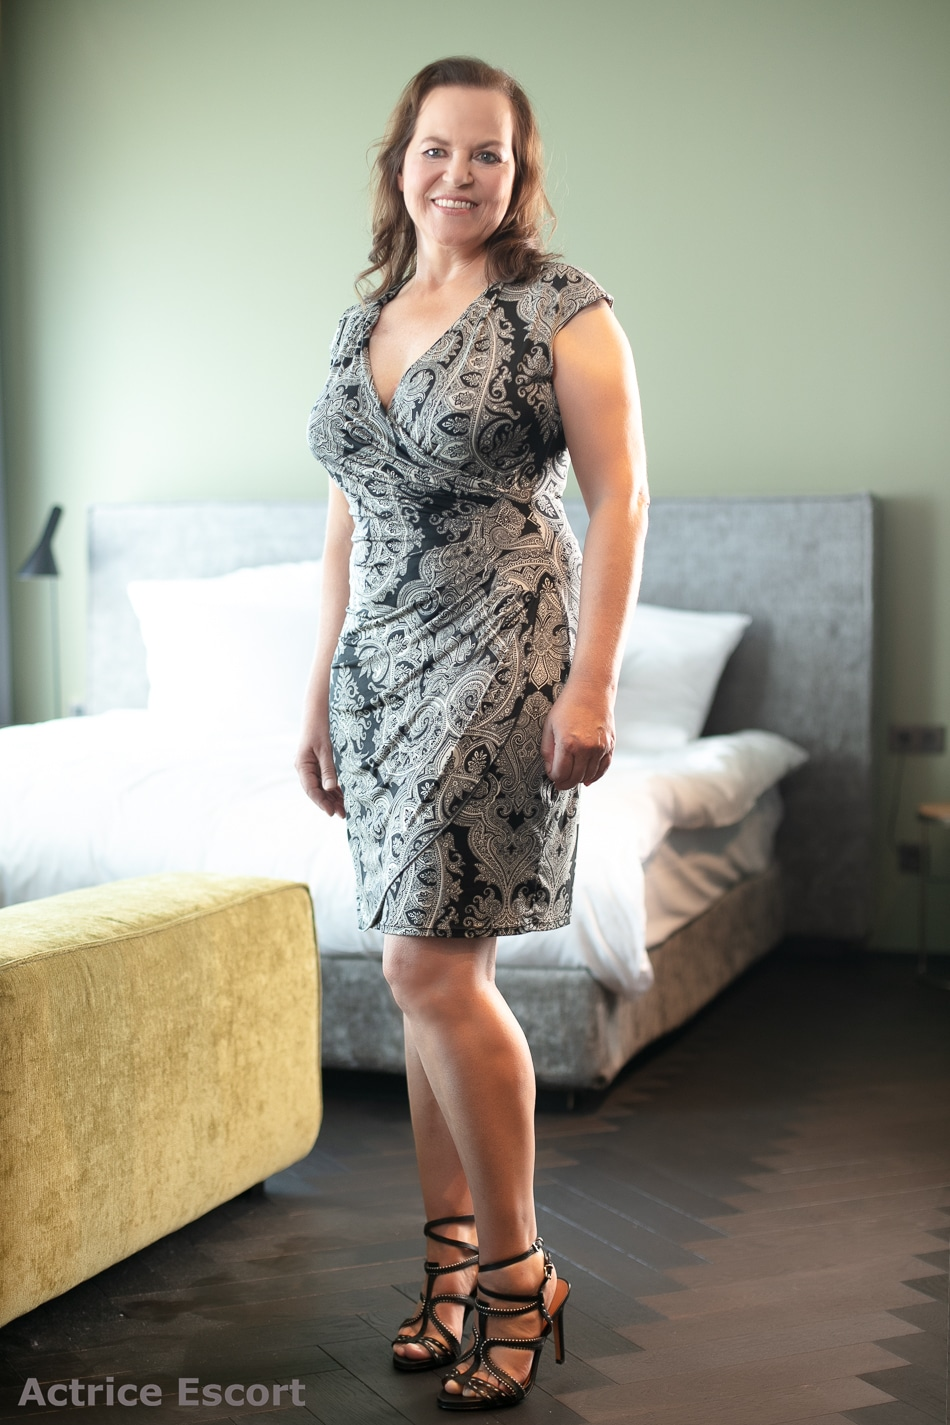 Bettina reife Frau Escortservice Duesseldorf(9)